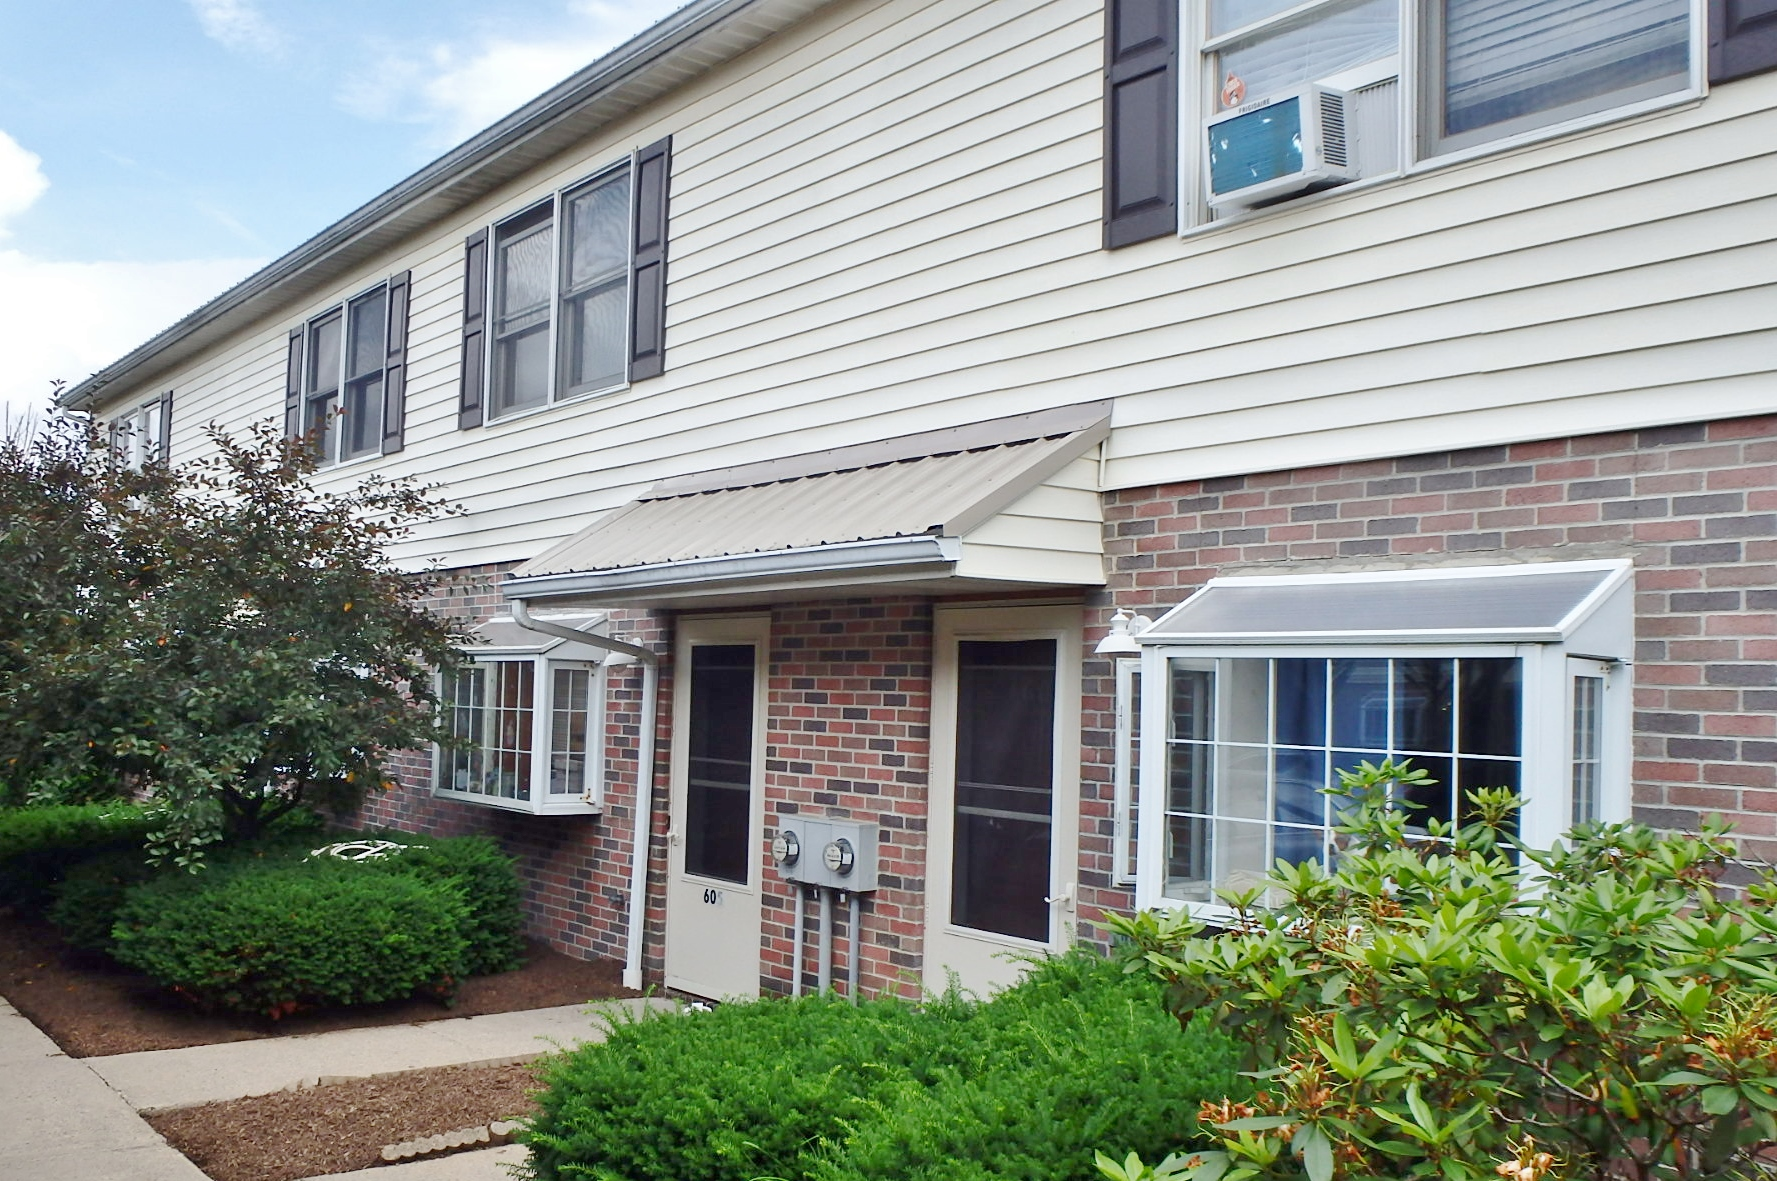 3-bedroom townhouse for rent at 605 Marjorie Mae Street, State College PA 16803